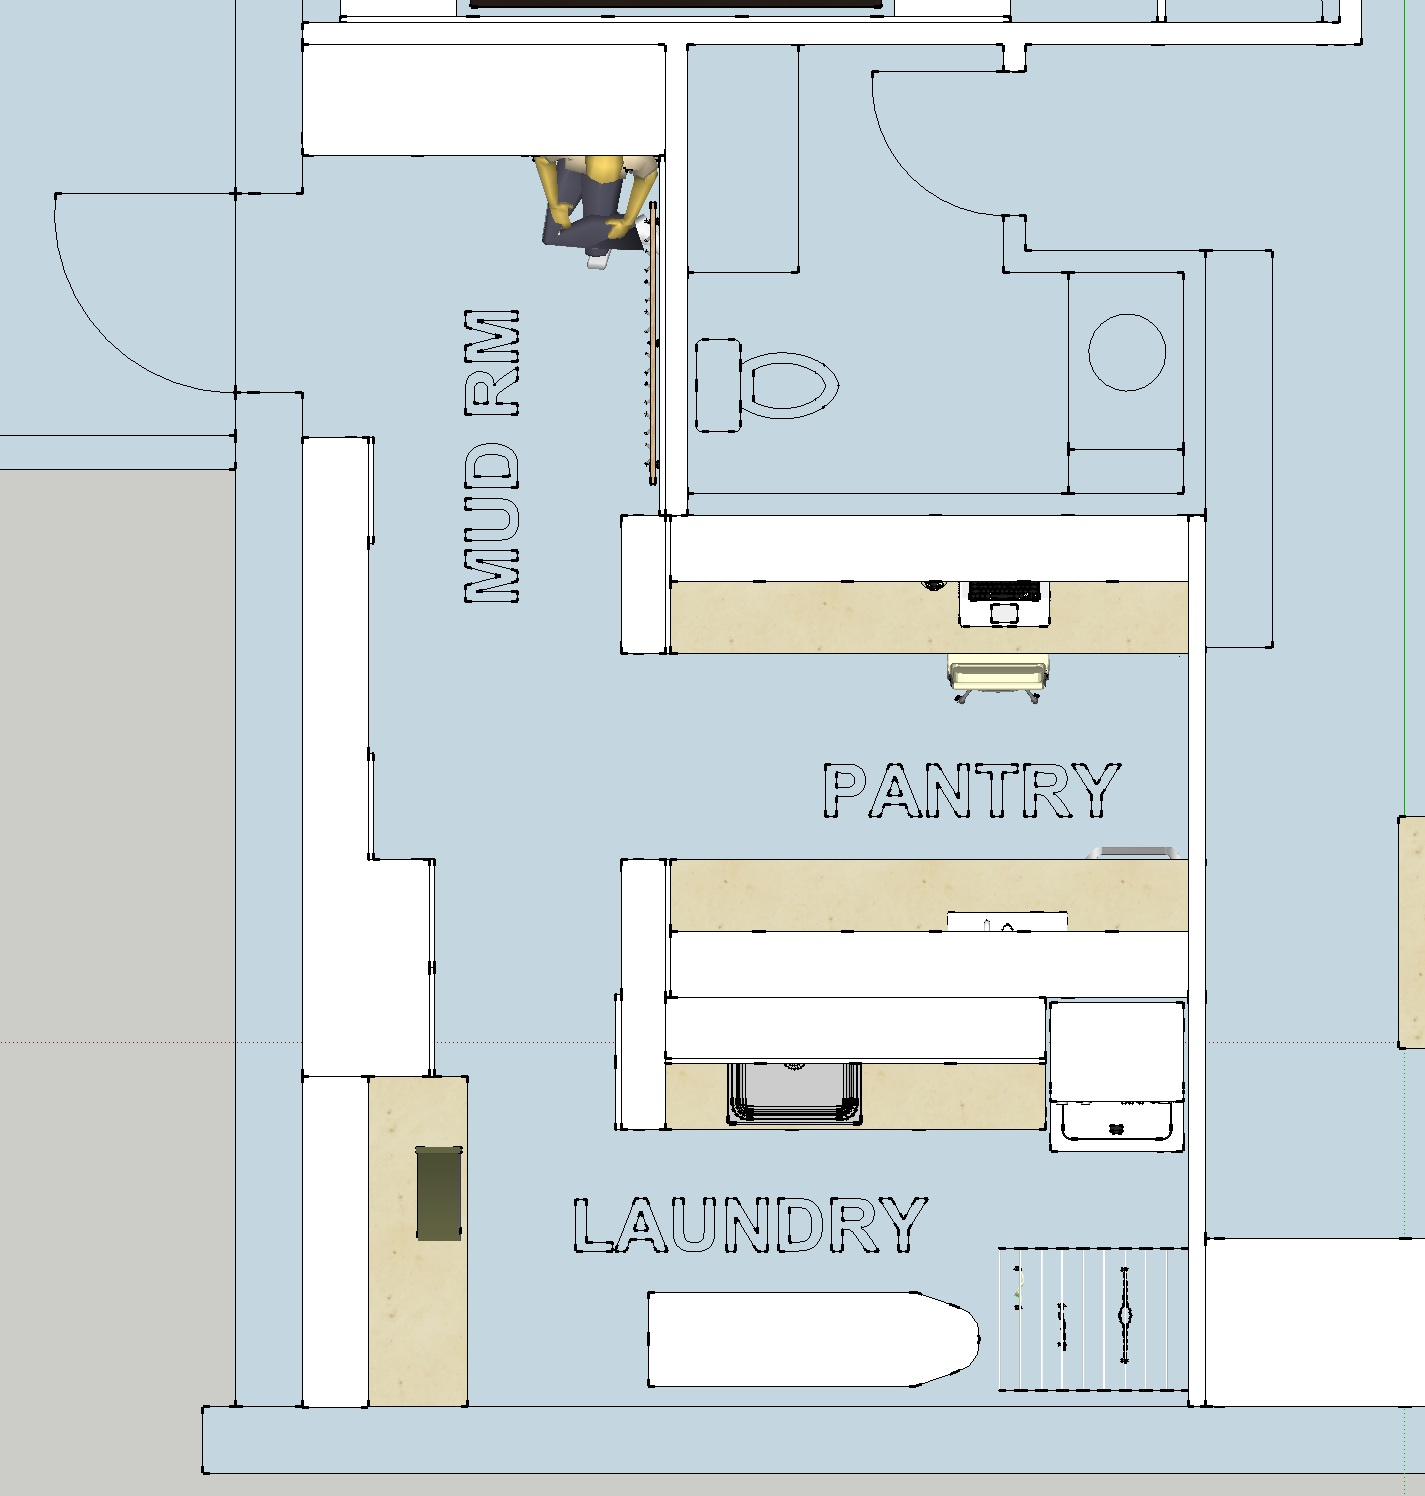 Astounding Design Of The Simple Floor Plans With Laundry And Pantry Areas  Added With Mud Rm